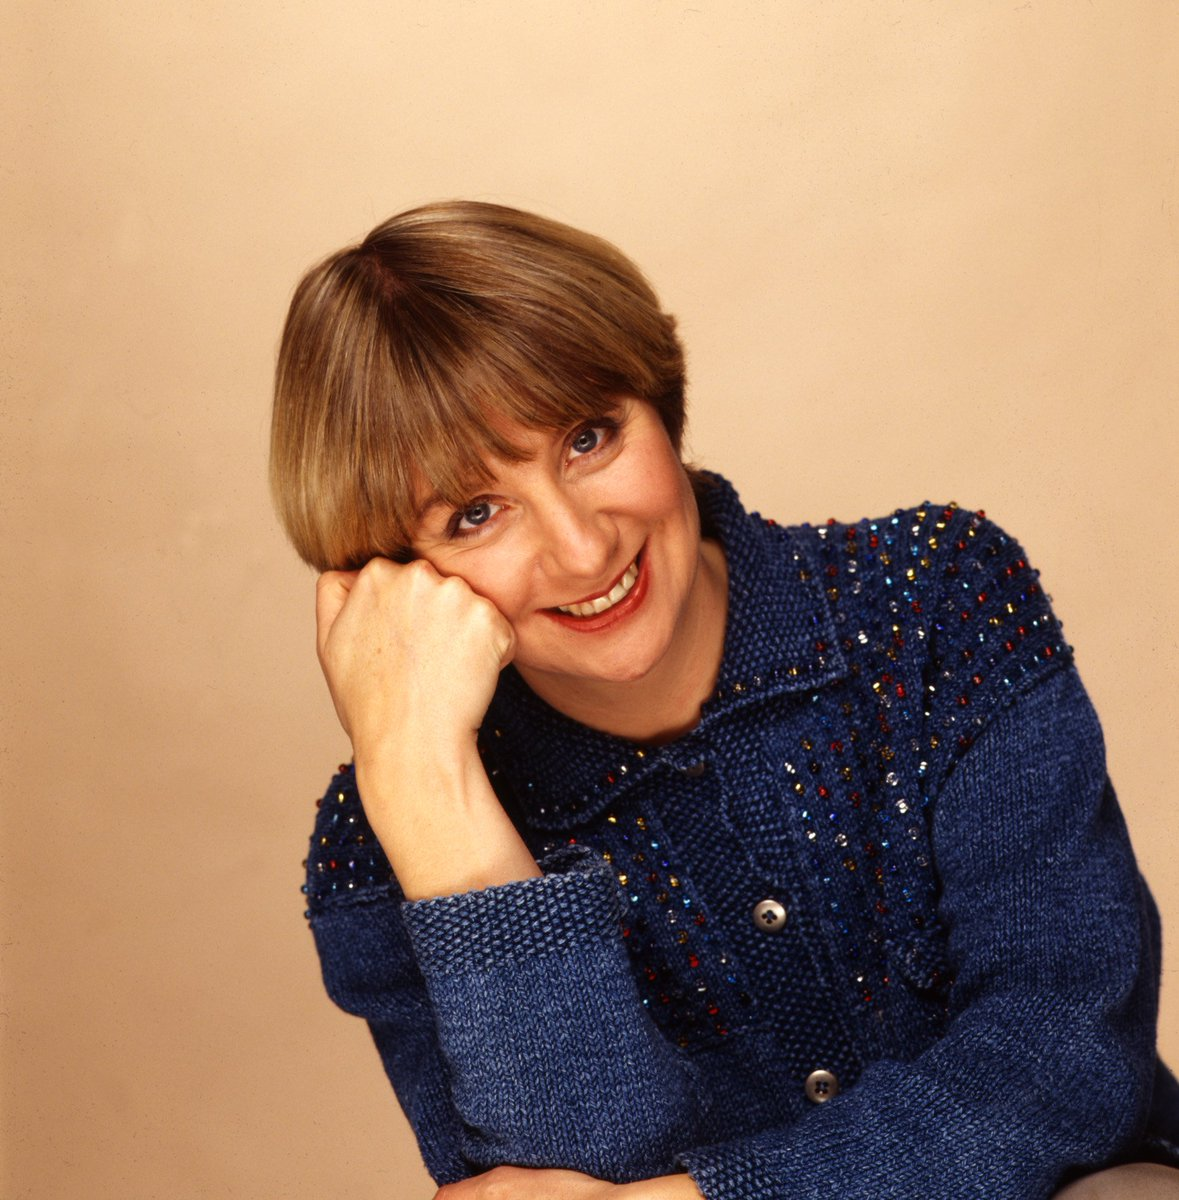 Victoria Wood has died at the age of 62. Listen to her Desert Island Discs here: https://t.co/plQY6bA7mb https://t.co/qtkXCzhByo